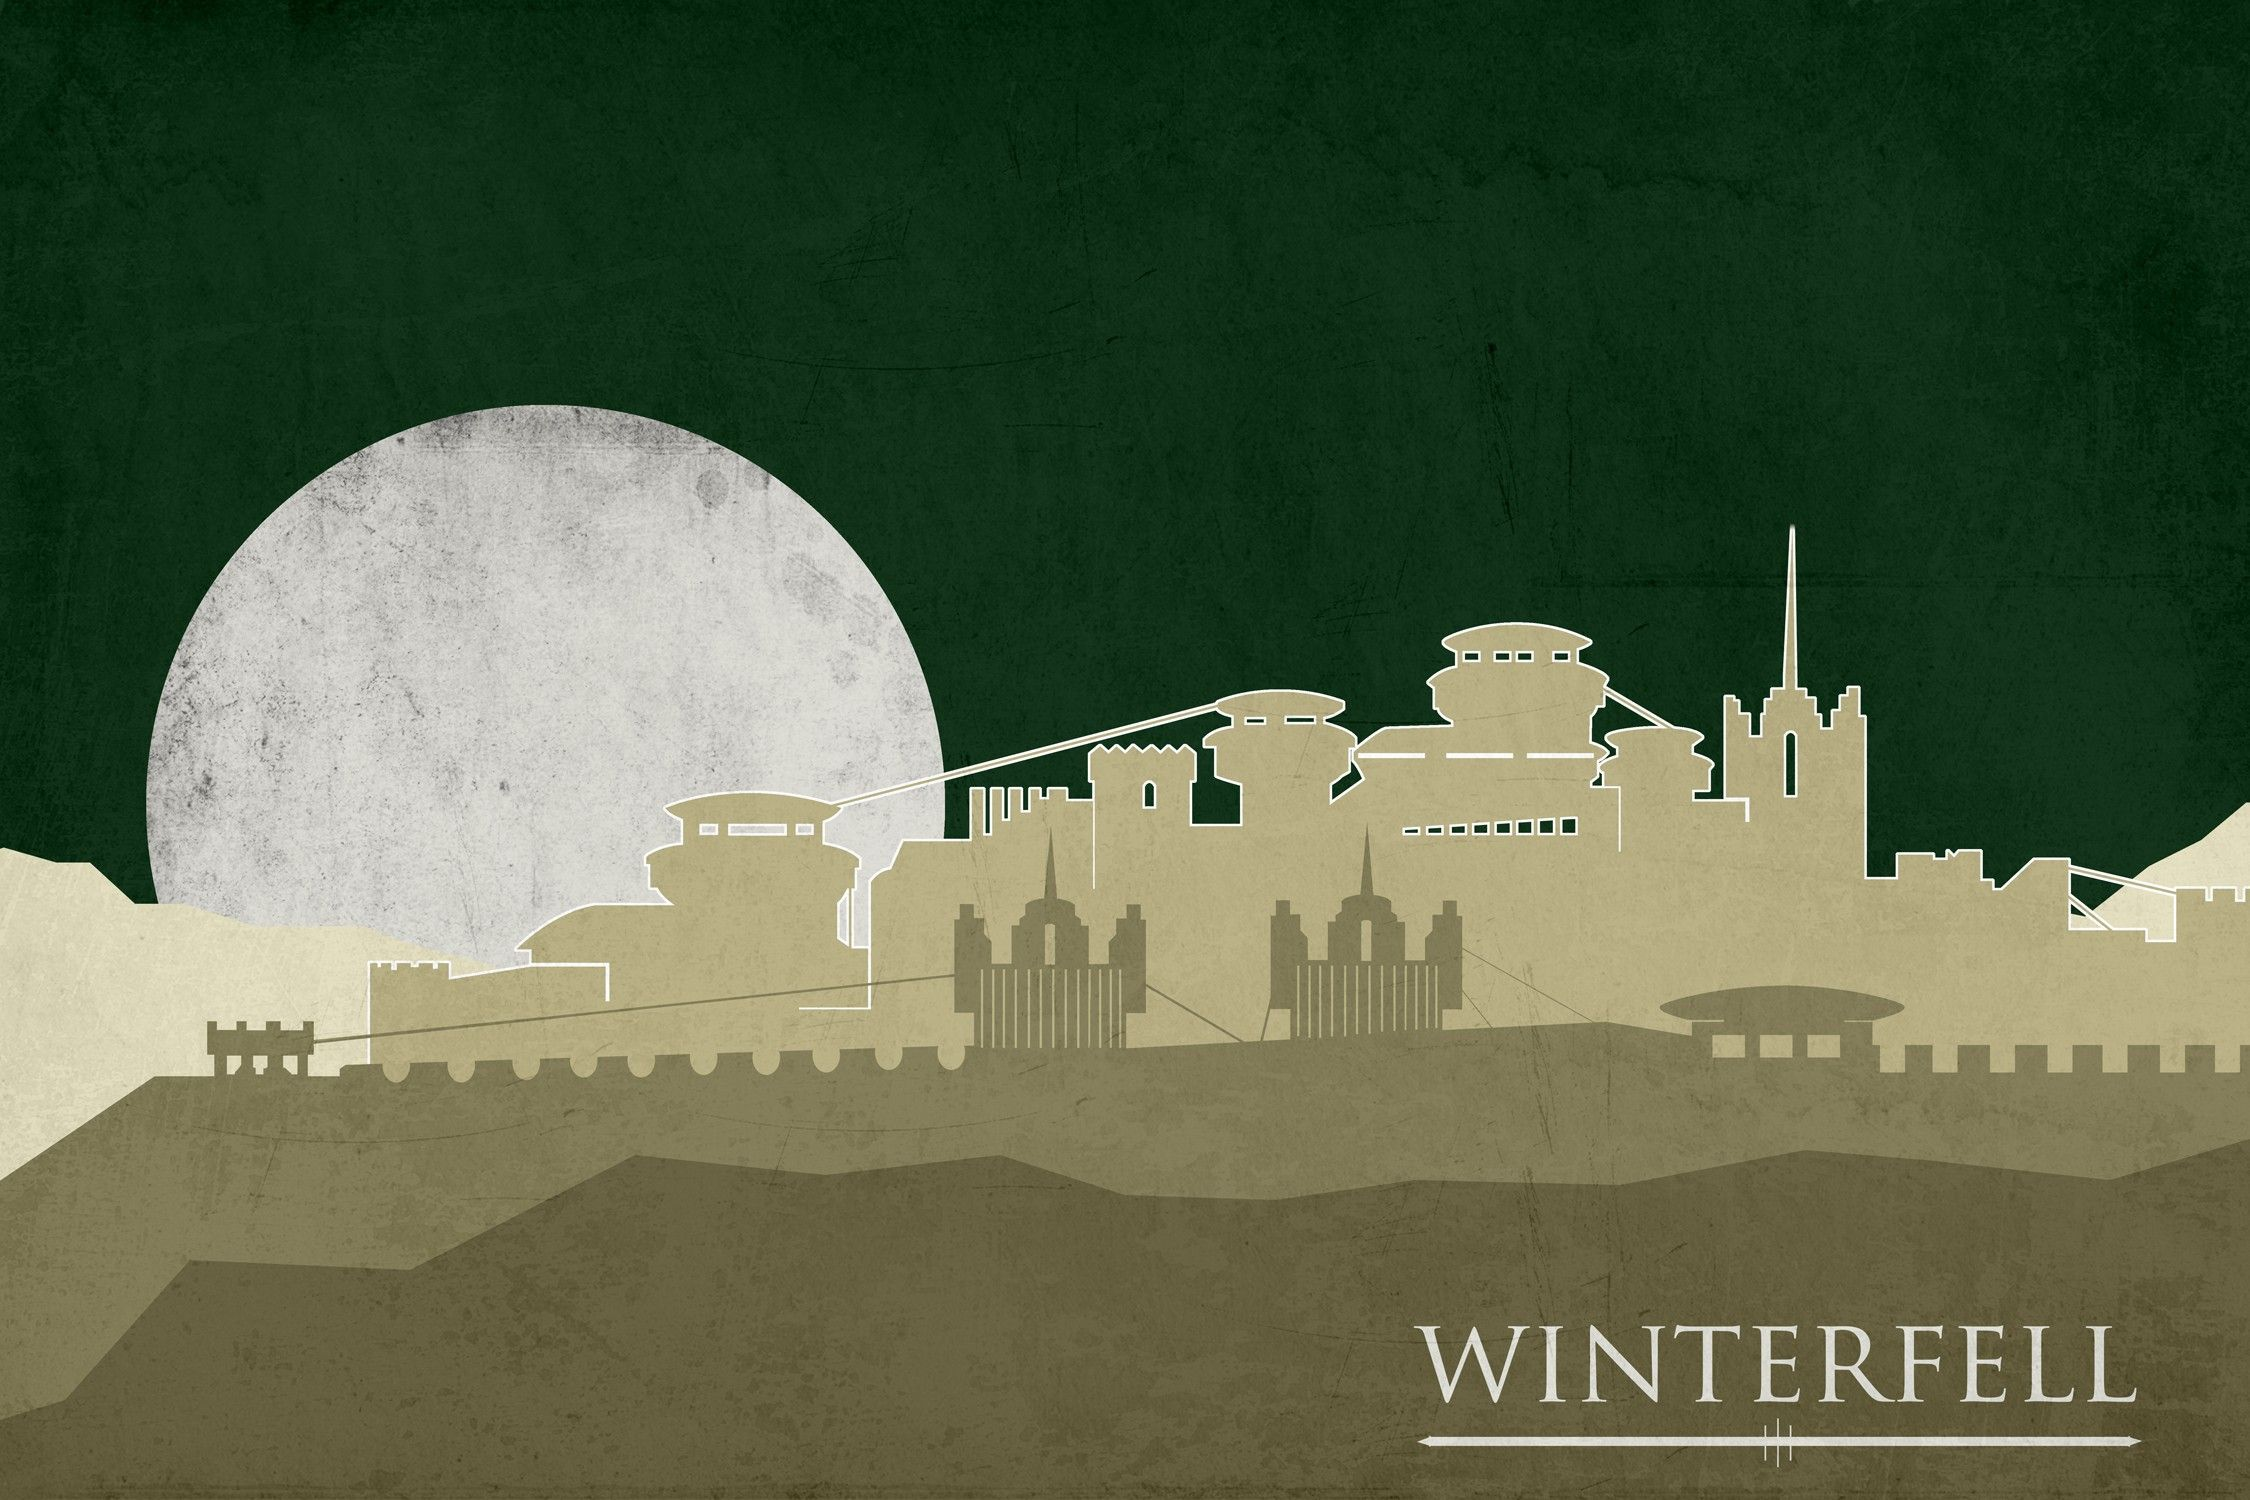 Fantasy Art Game Of Thrones A Song Of Ice And Fire Winterfell Hbo